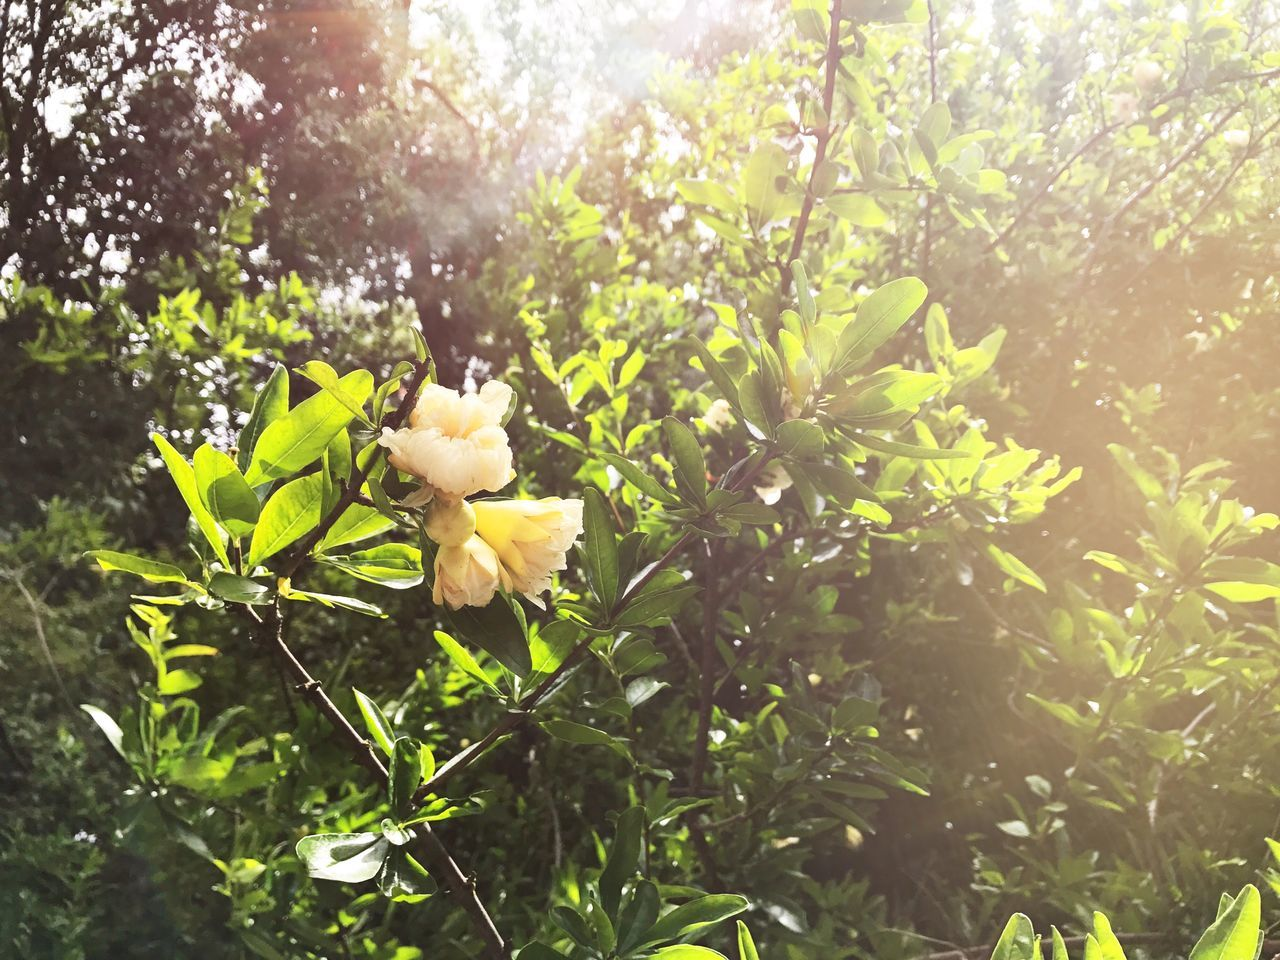 flower, growth, nature, freshness, blossom, plant, petal, beauty in nature, outdoors, no people, fragility, tree, blooming, day, flower head, close-up